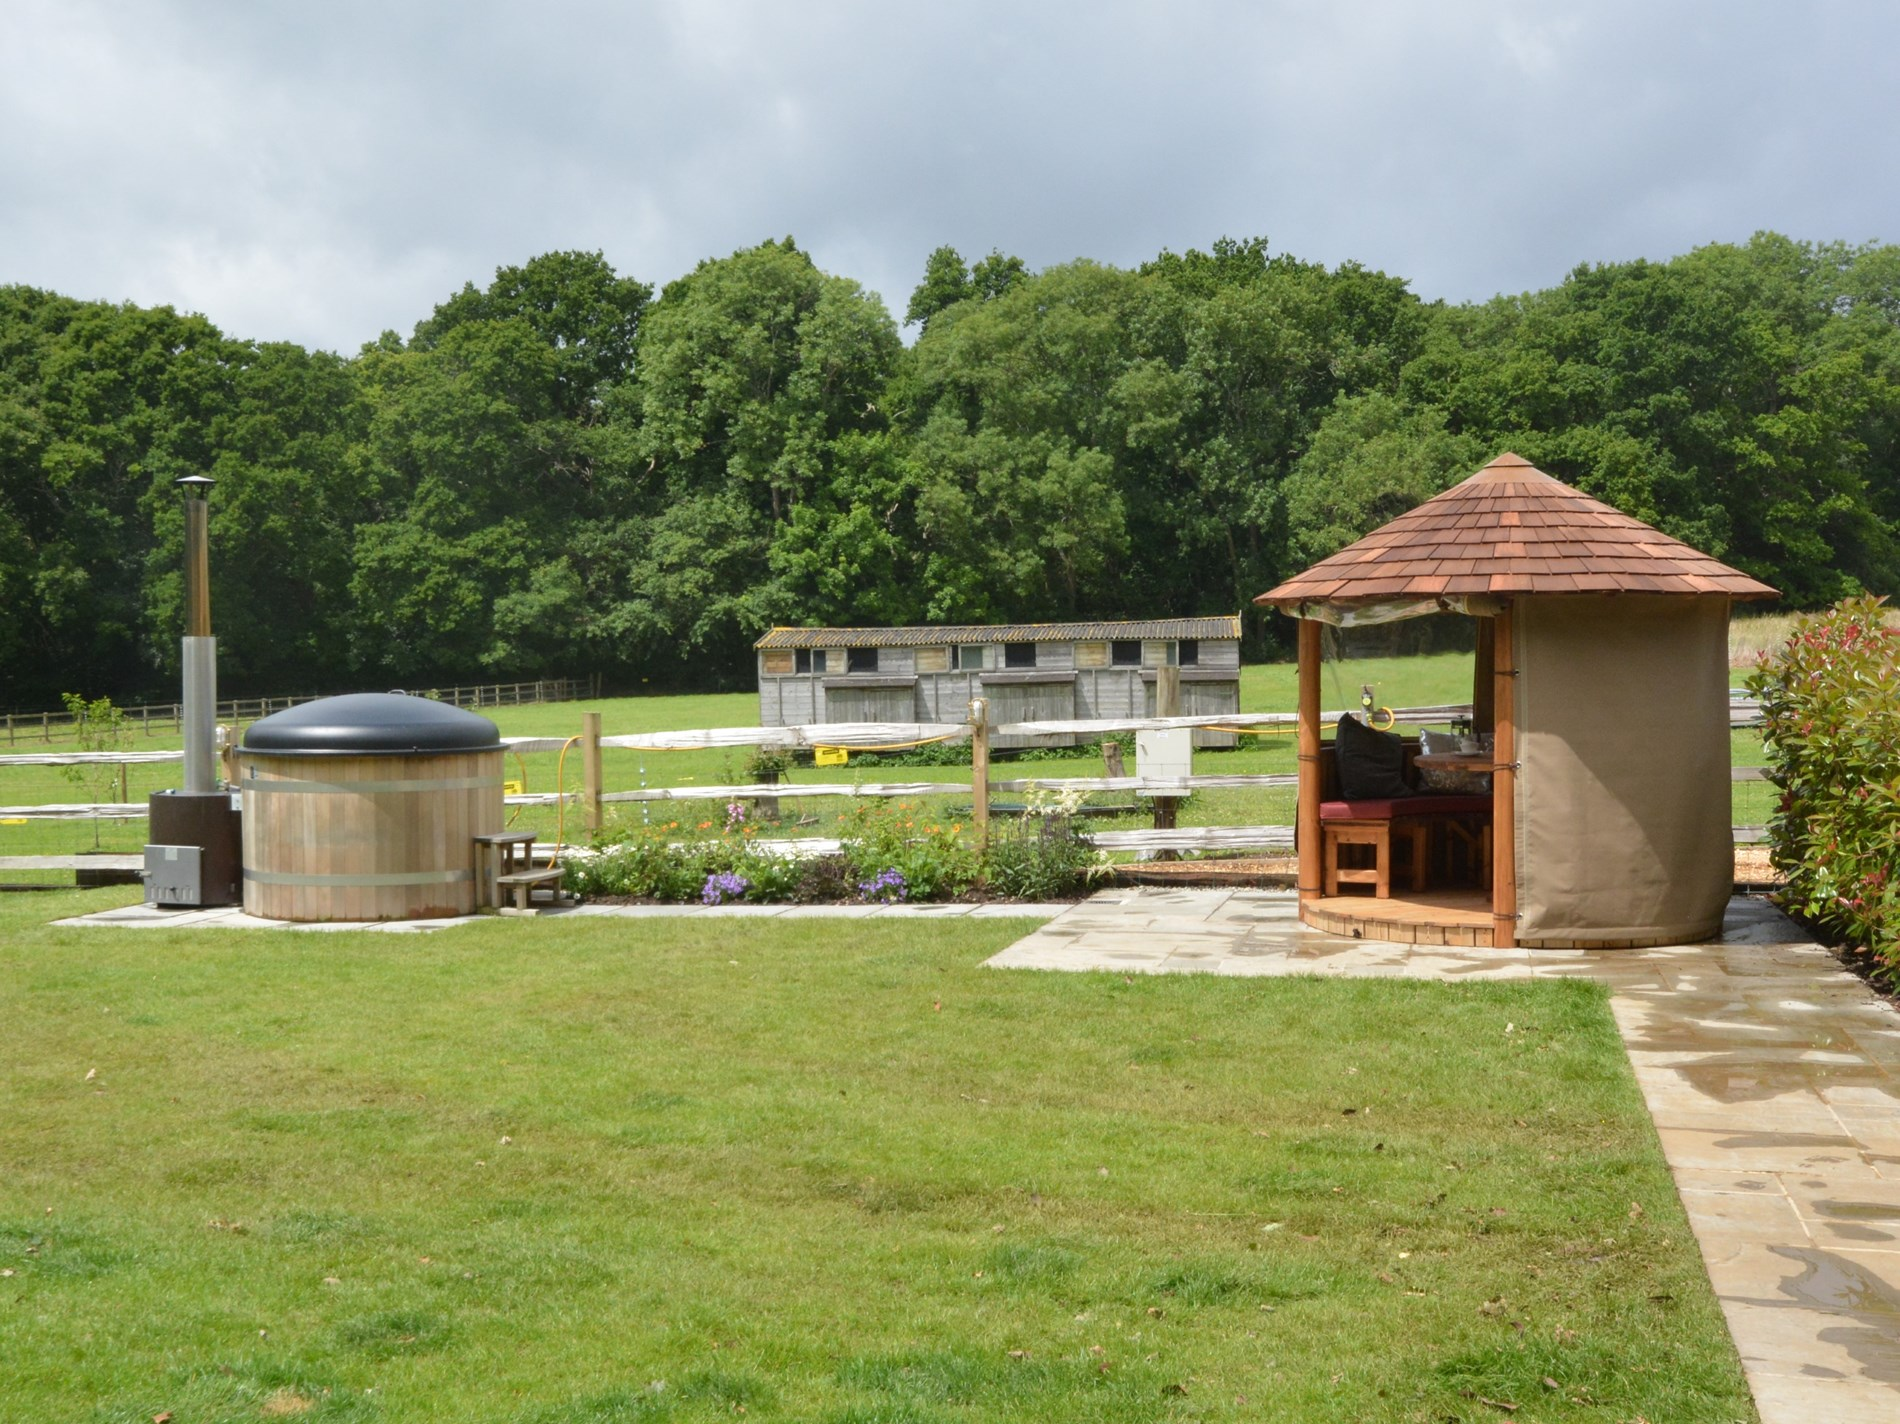 Hot tub and gazebo to make the most of the countryside views